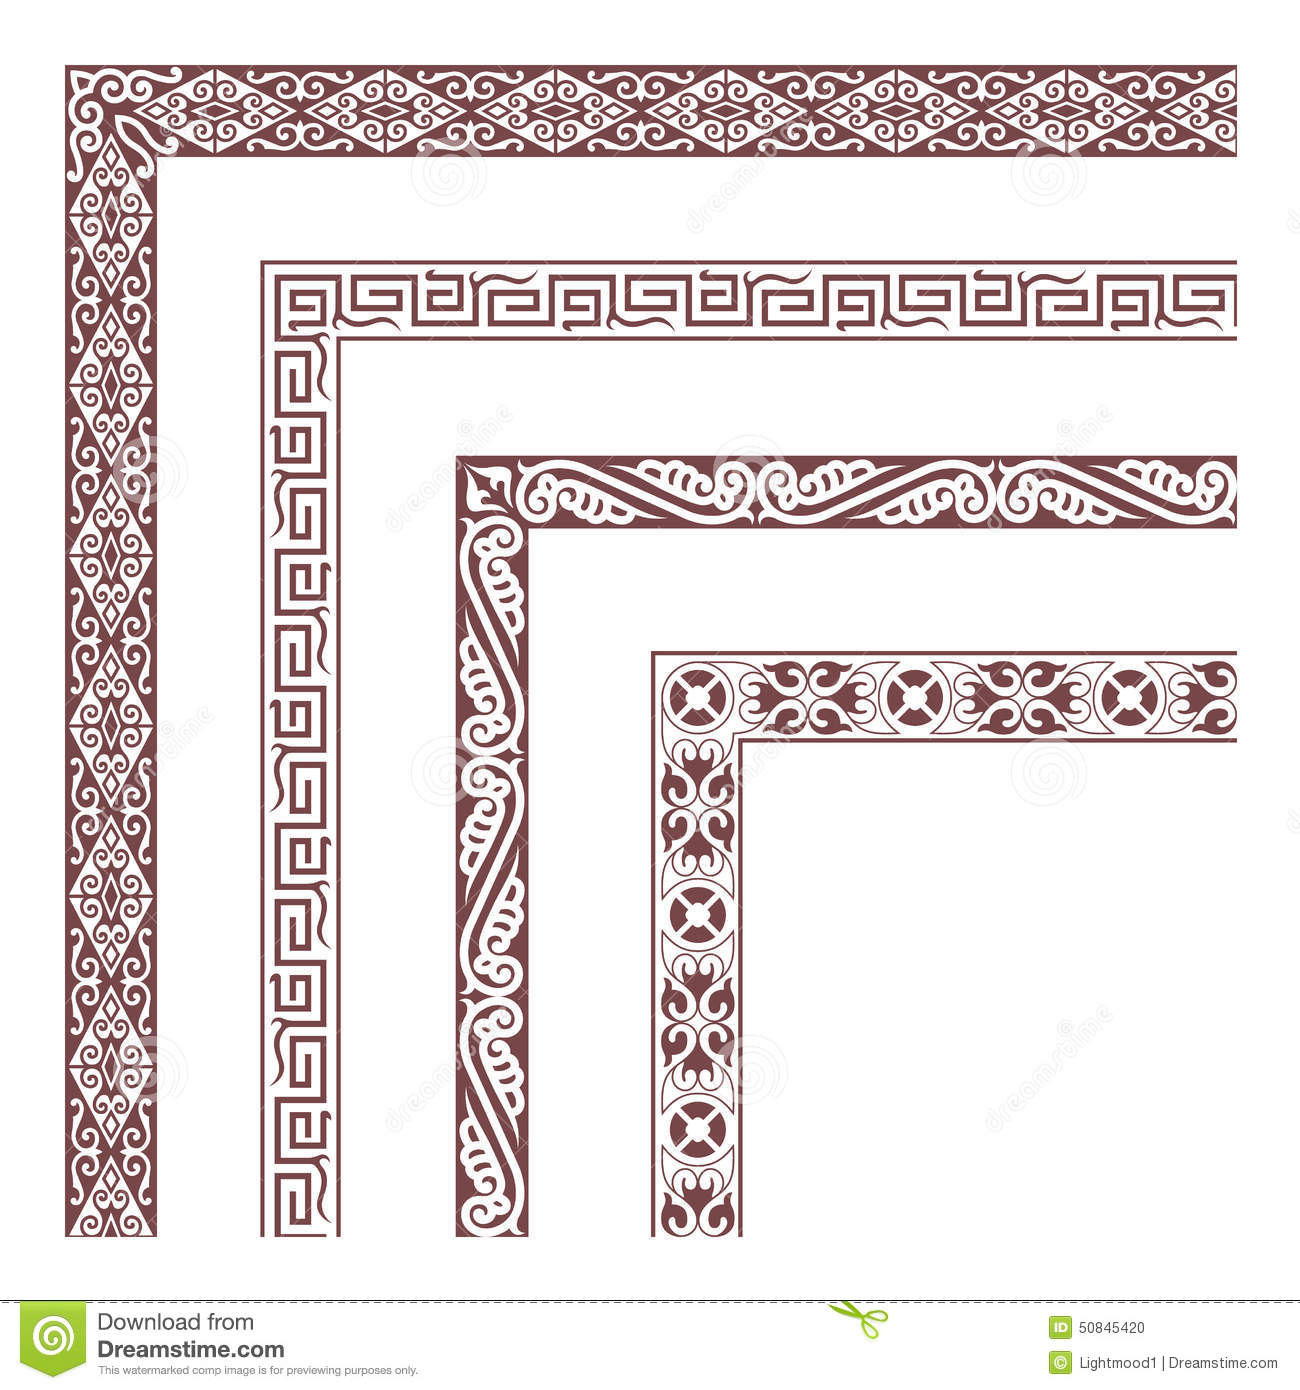 The Frames Of Chinese Style Stock Vector - Illustration of seamless ...